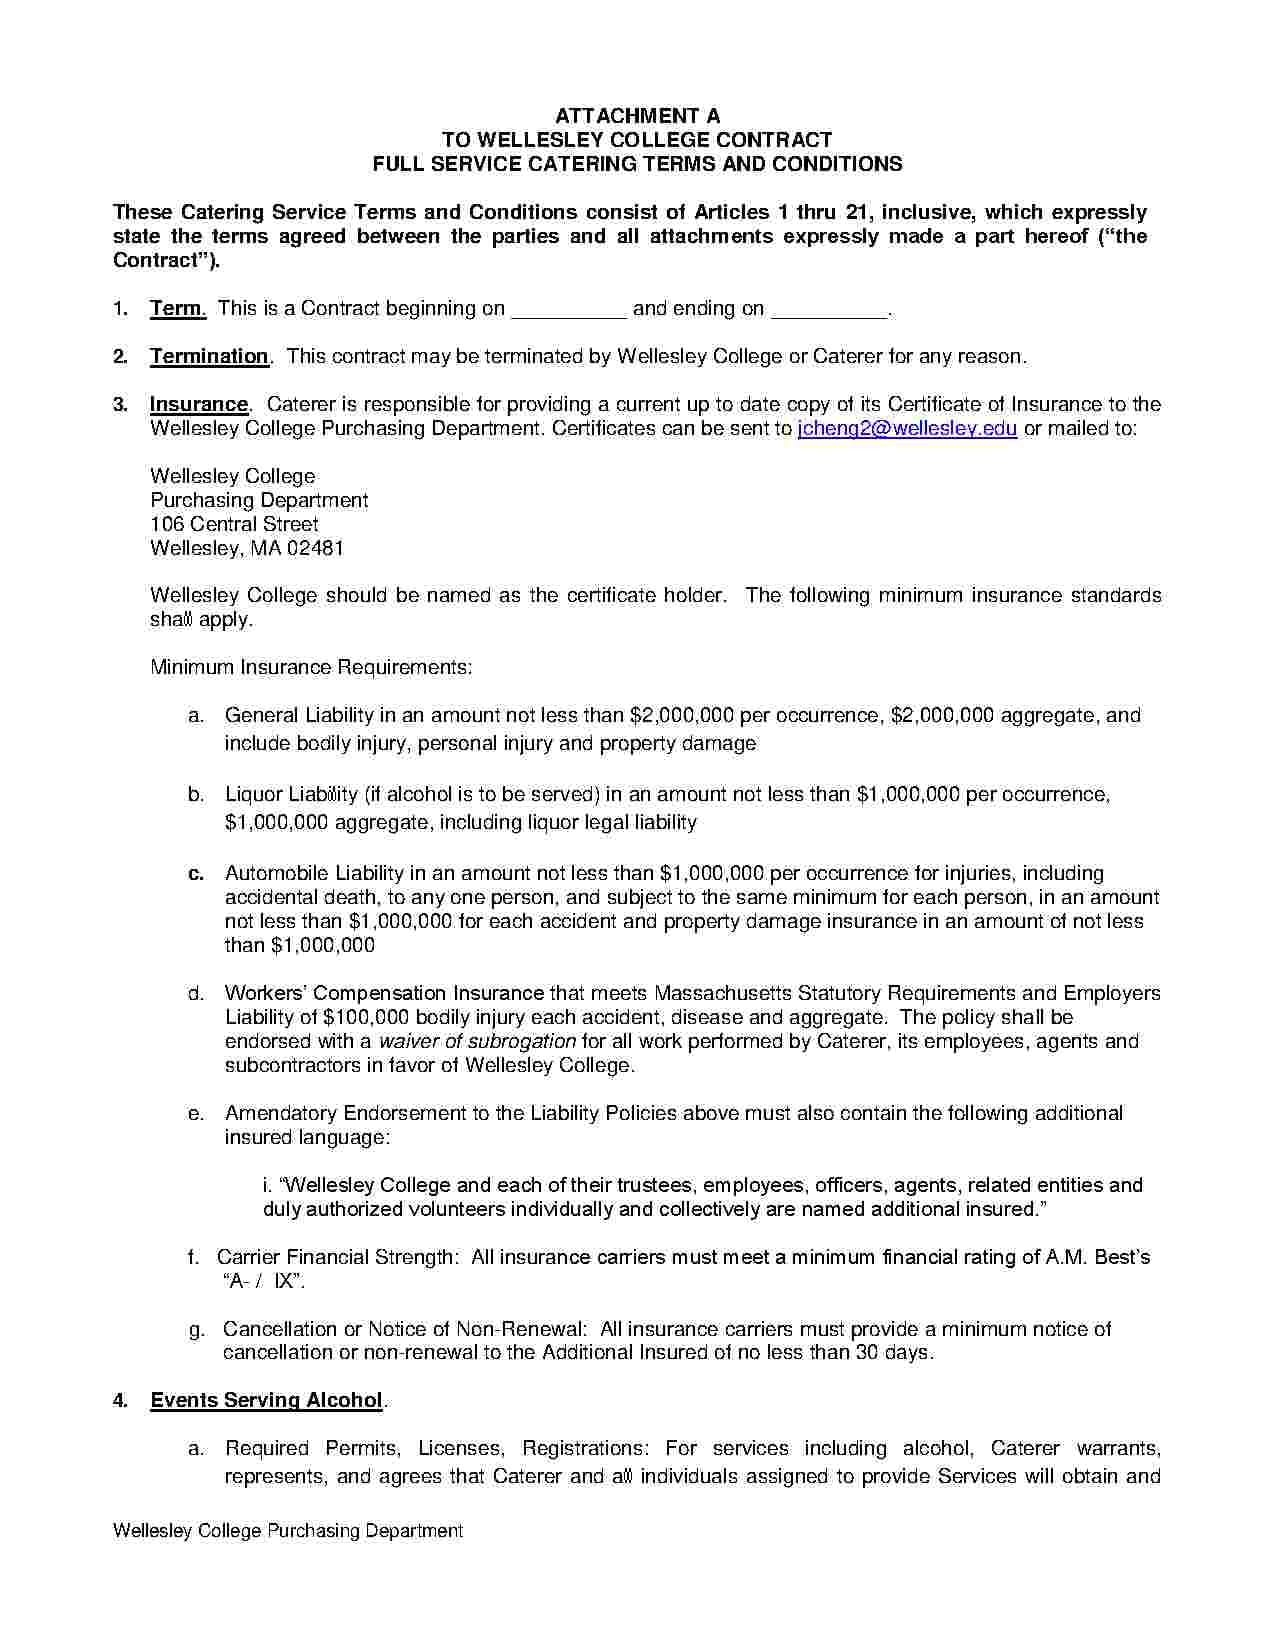 Download Catering Contract Style 1 Template For Free At Templates Hunter Inside Catering Contract Worksheet